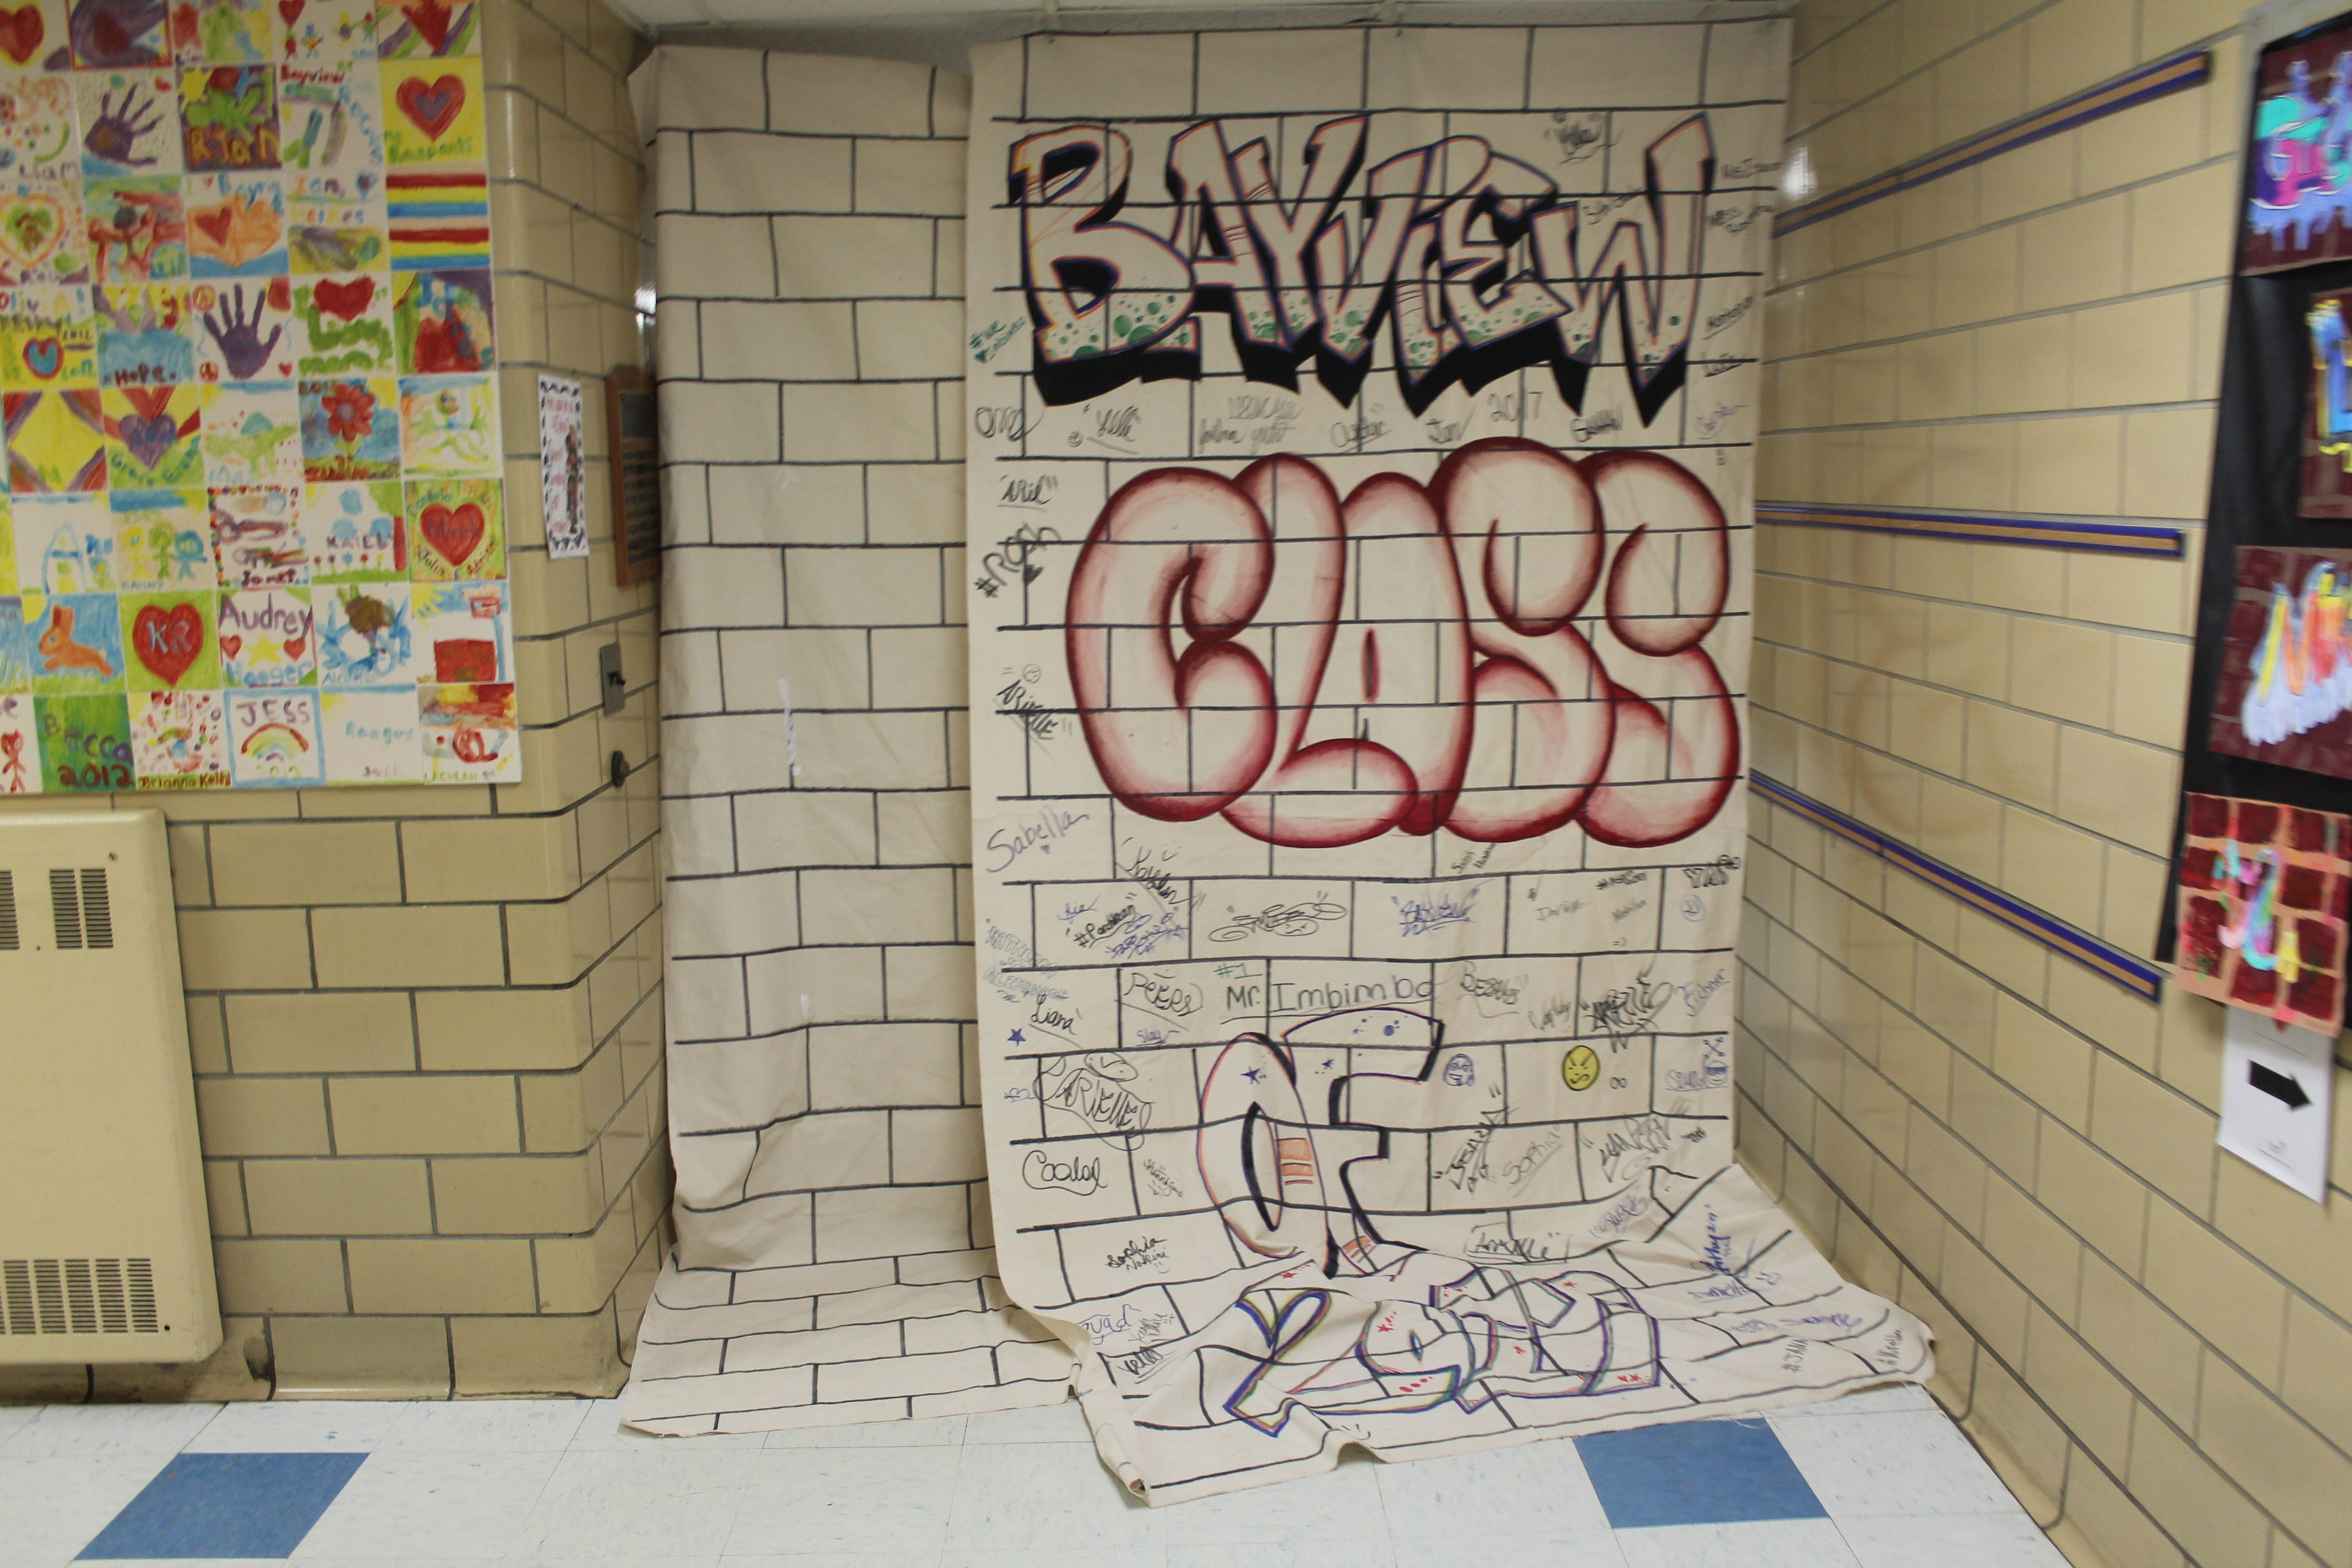 Created Graffiti Wall Egyptian Canvas From Michaels Created A Brick Wall Graffiti School Name And Year Left A Bucket Of Color Markers Available So Kids